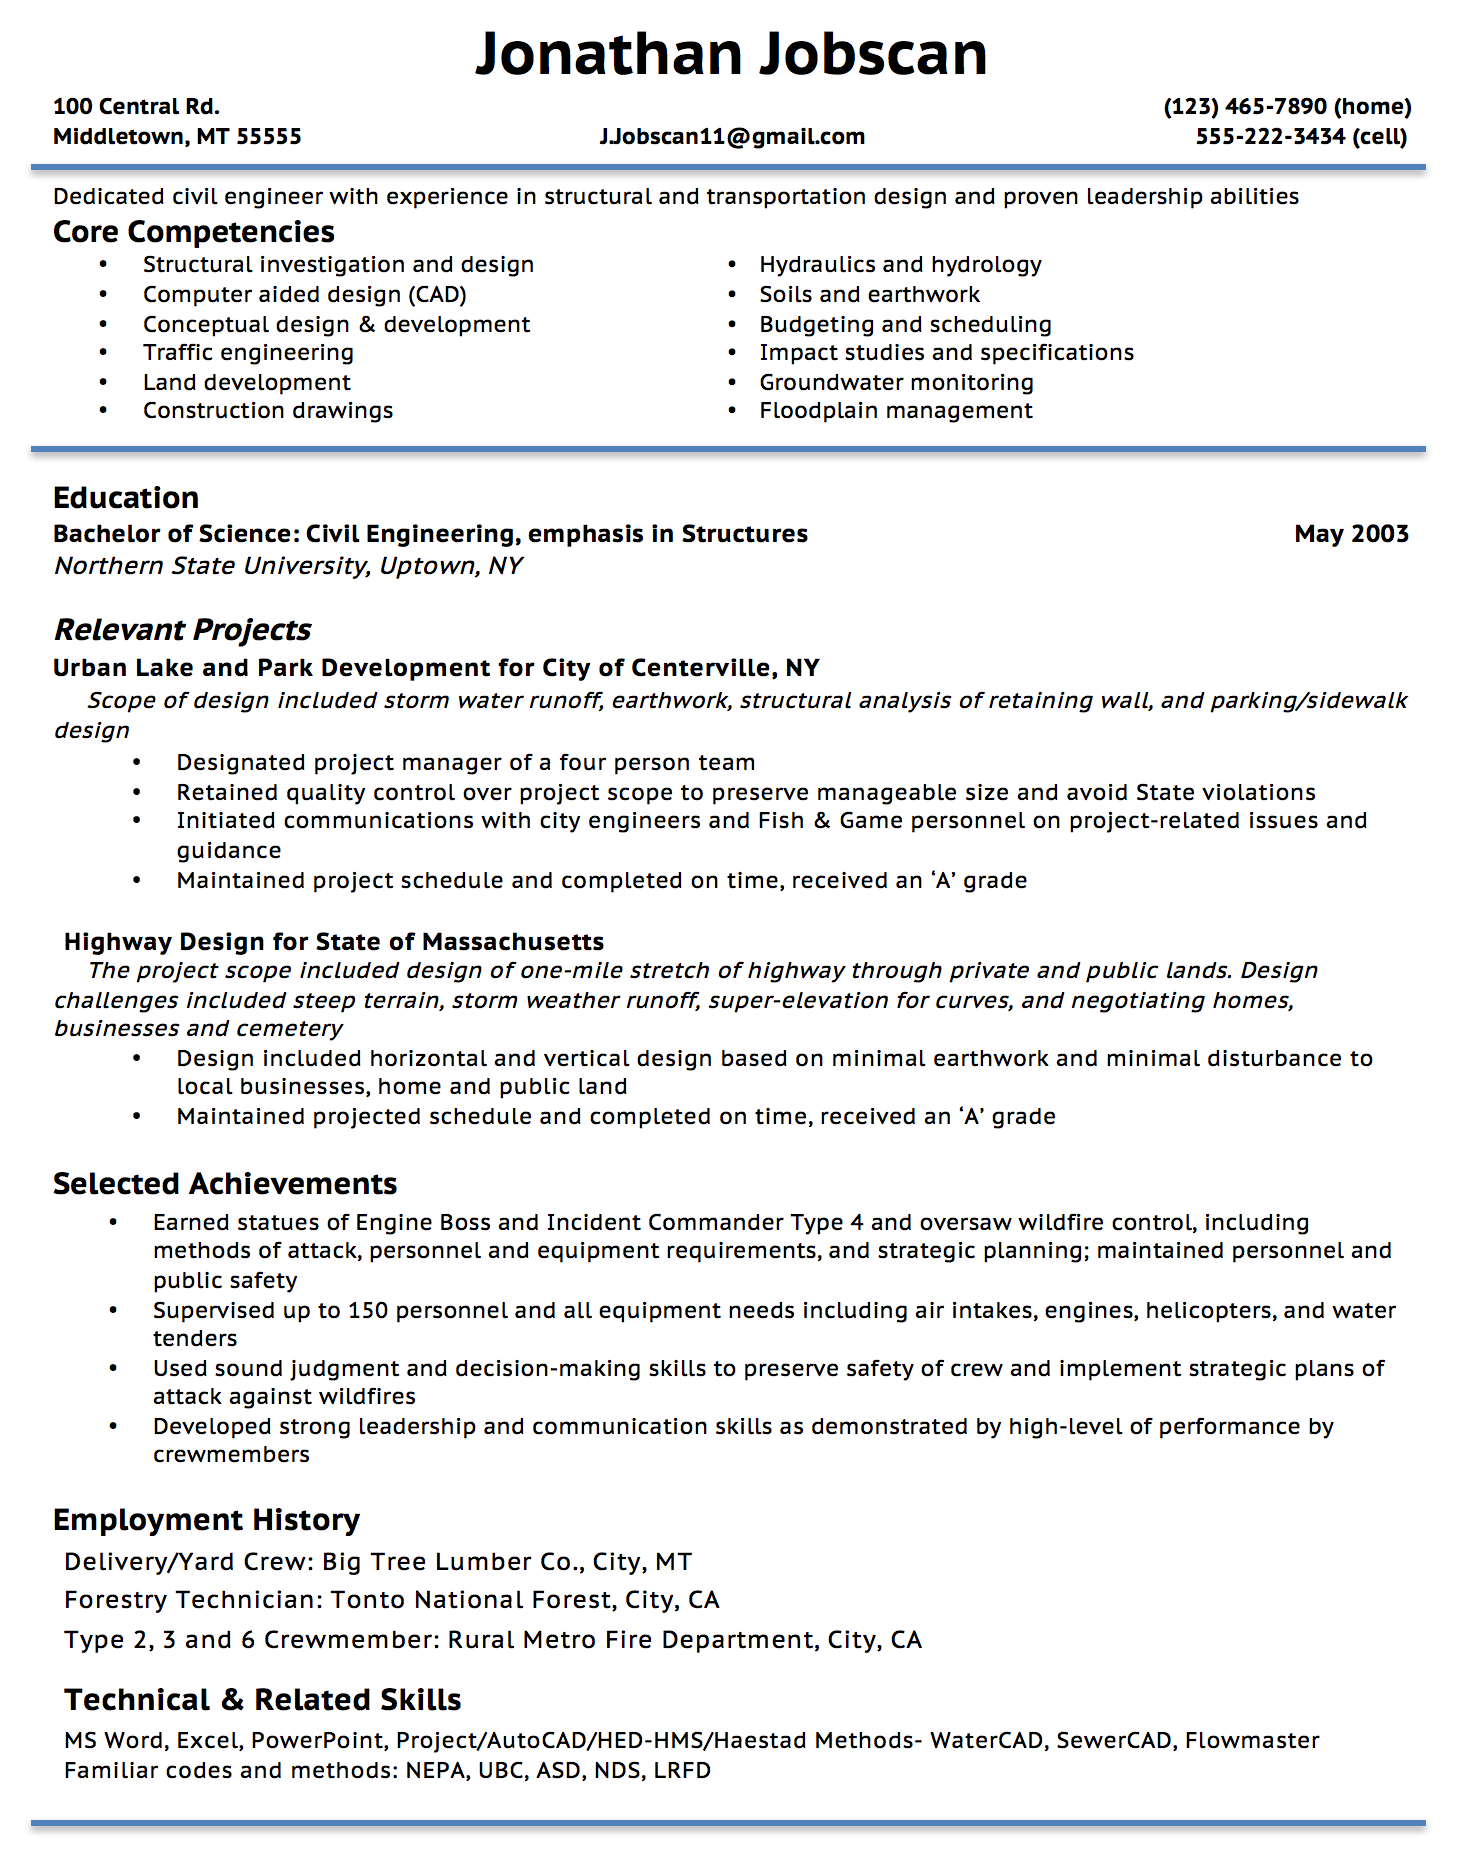 Opposenewapstandardsus  Stunning Resume Writing Guide  Jobscan With Outstanding Example Of A Functional Resume Format With Appealing Resume Tempaltes Also How To Write A Resume For Graduate School In Addition Camp Counselor Job Description For Resume And Housekeeping Resume Objective As Well As How To Write A Resume Examples Additionally How To Make An Online Resume From Jobscanco With Opposenewapstandardsus  Outstanding Resume Writing Guide  Jobscan With Appealing Example Of A Functional Resume Format And Stunning Resume Tempaltes Also How To Write A Resume For Graduate School In Addition Camp Counselor Job Description For Resume From Jobscanco